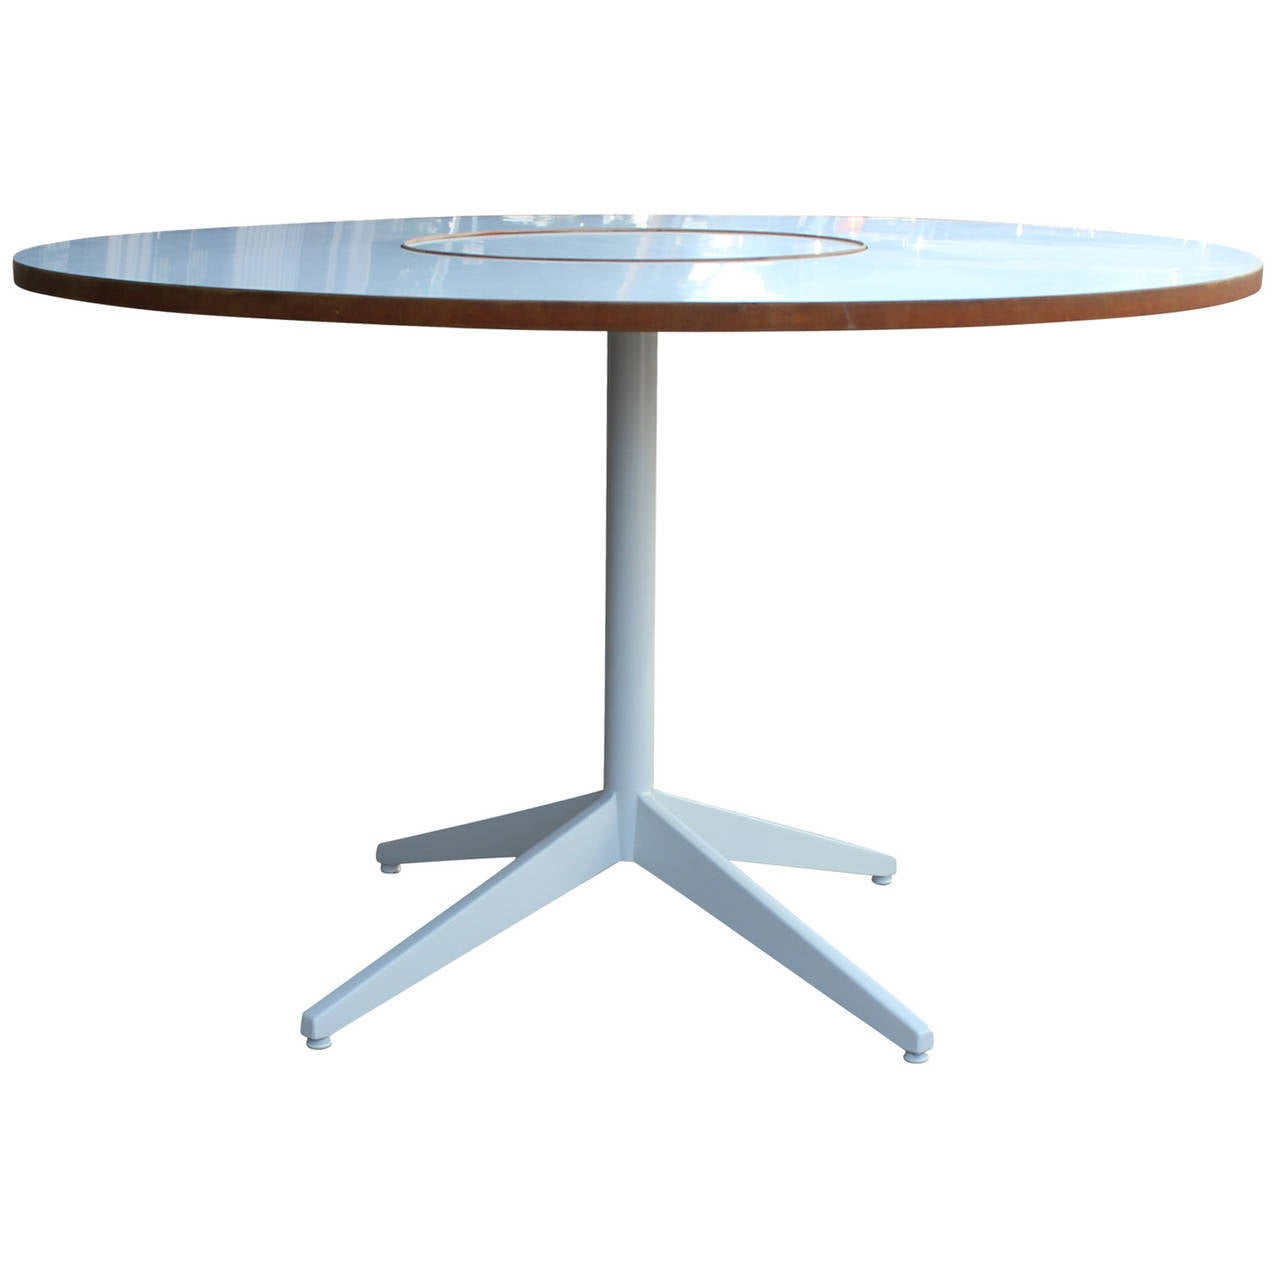 George Nelson For Herman Miller Table With Lazy Susan At